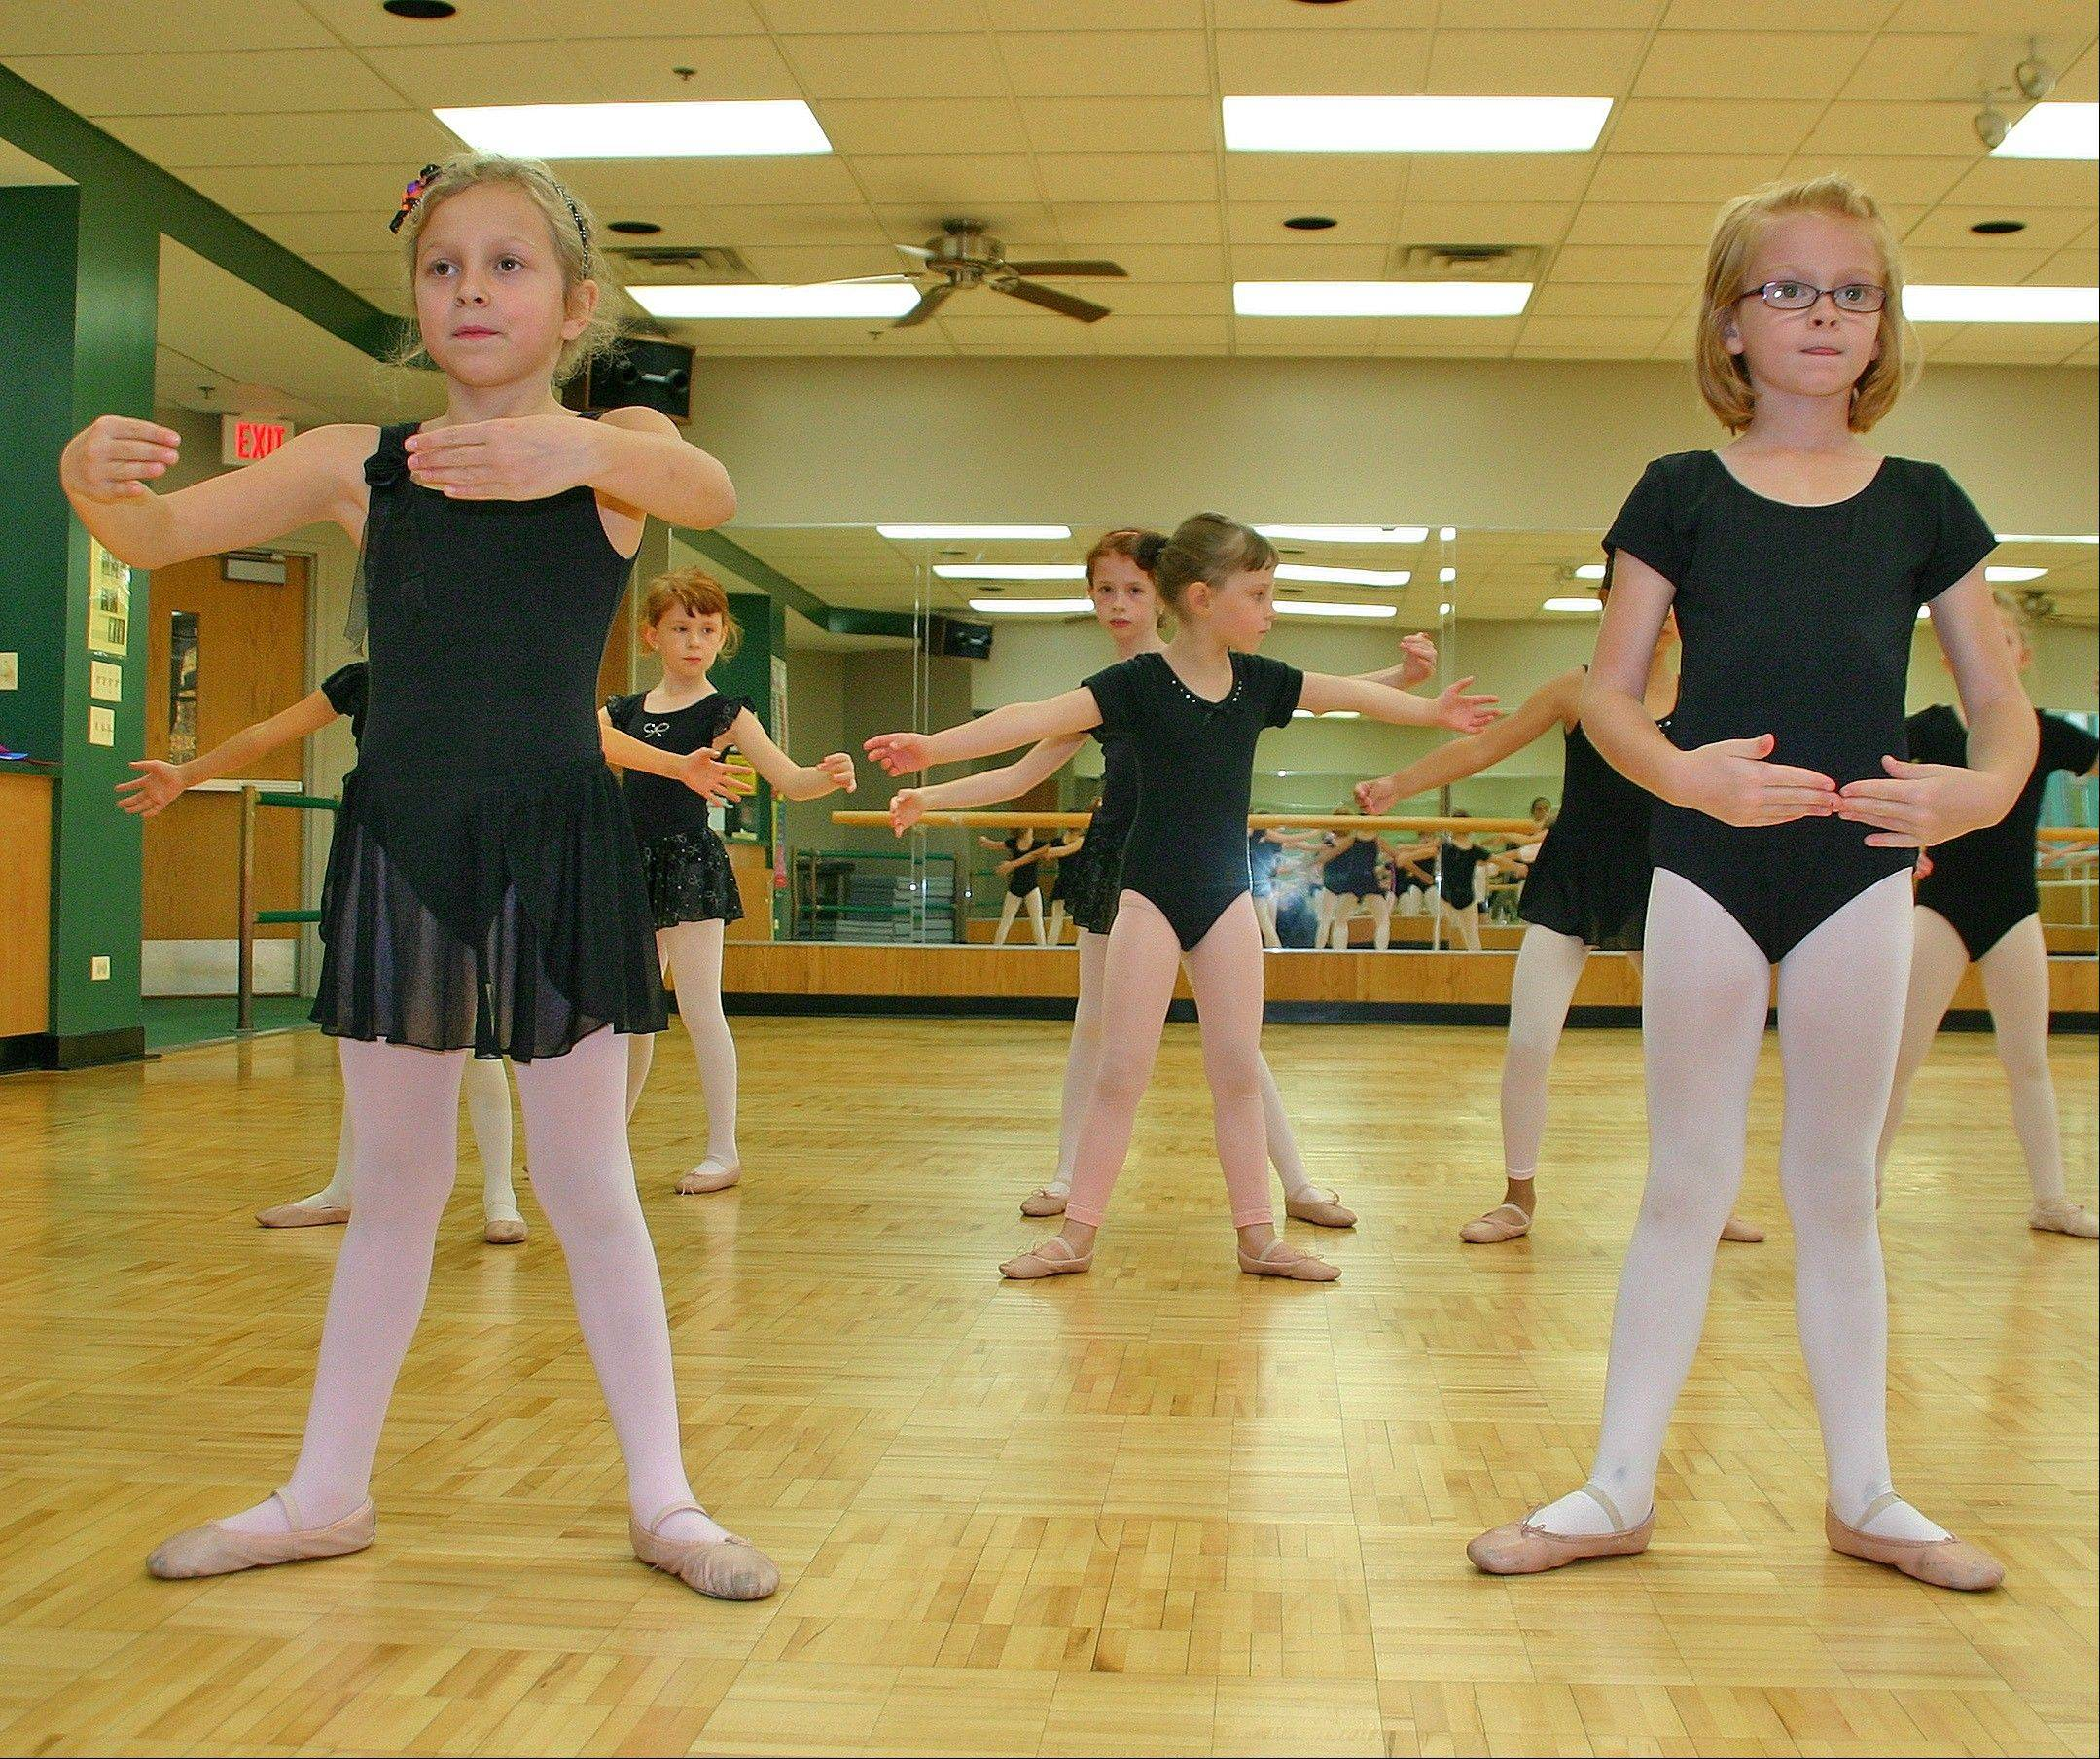 New and returning dancers to the Des Plaines School of dance can sample jazz, modern, hip-hop and ballet classes at the Saturday, Sept. 10, open house.